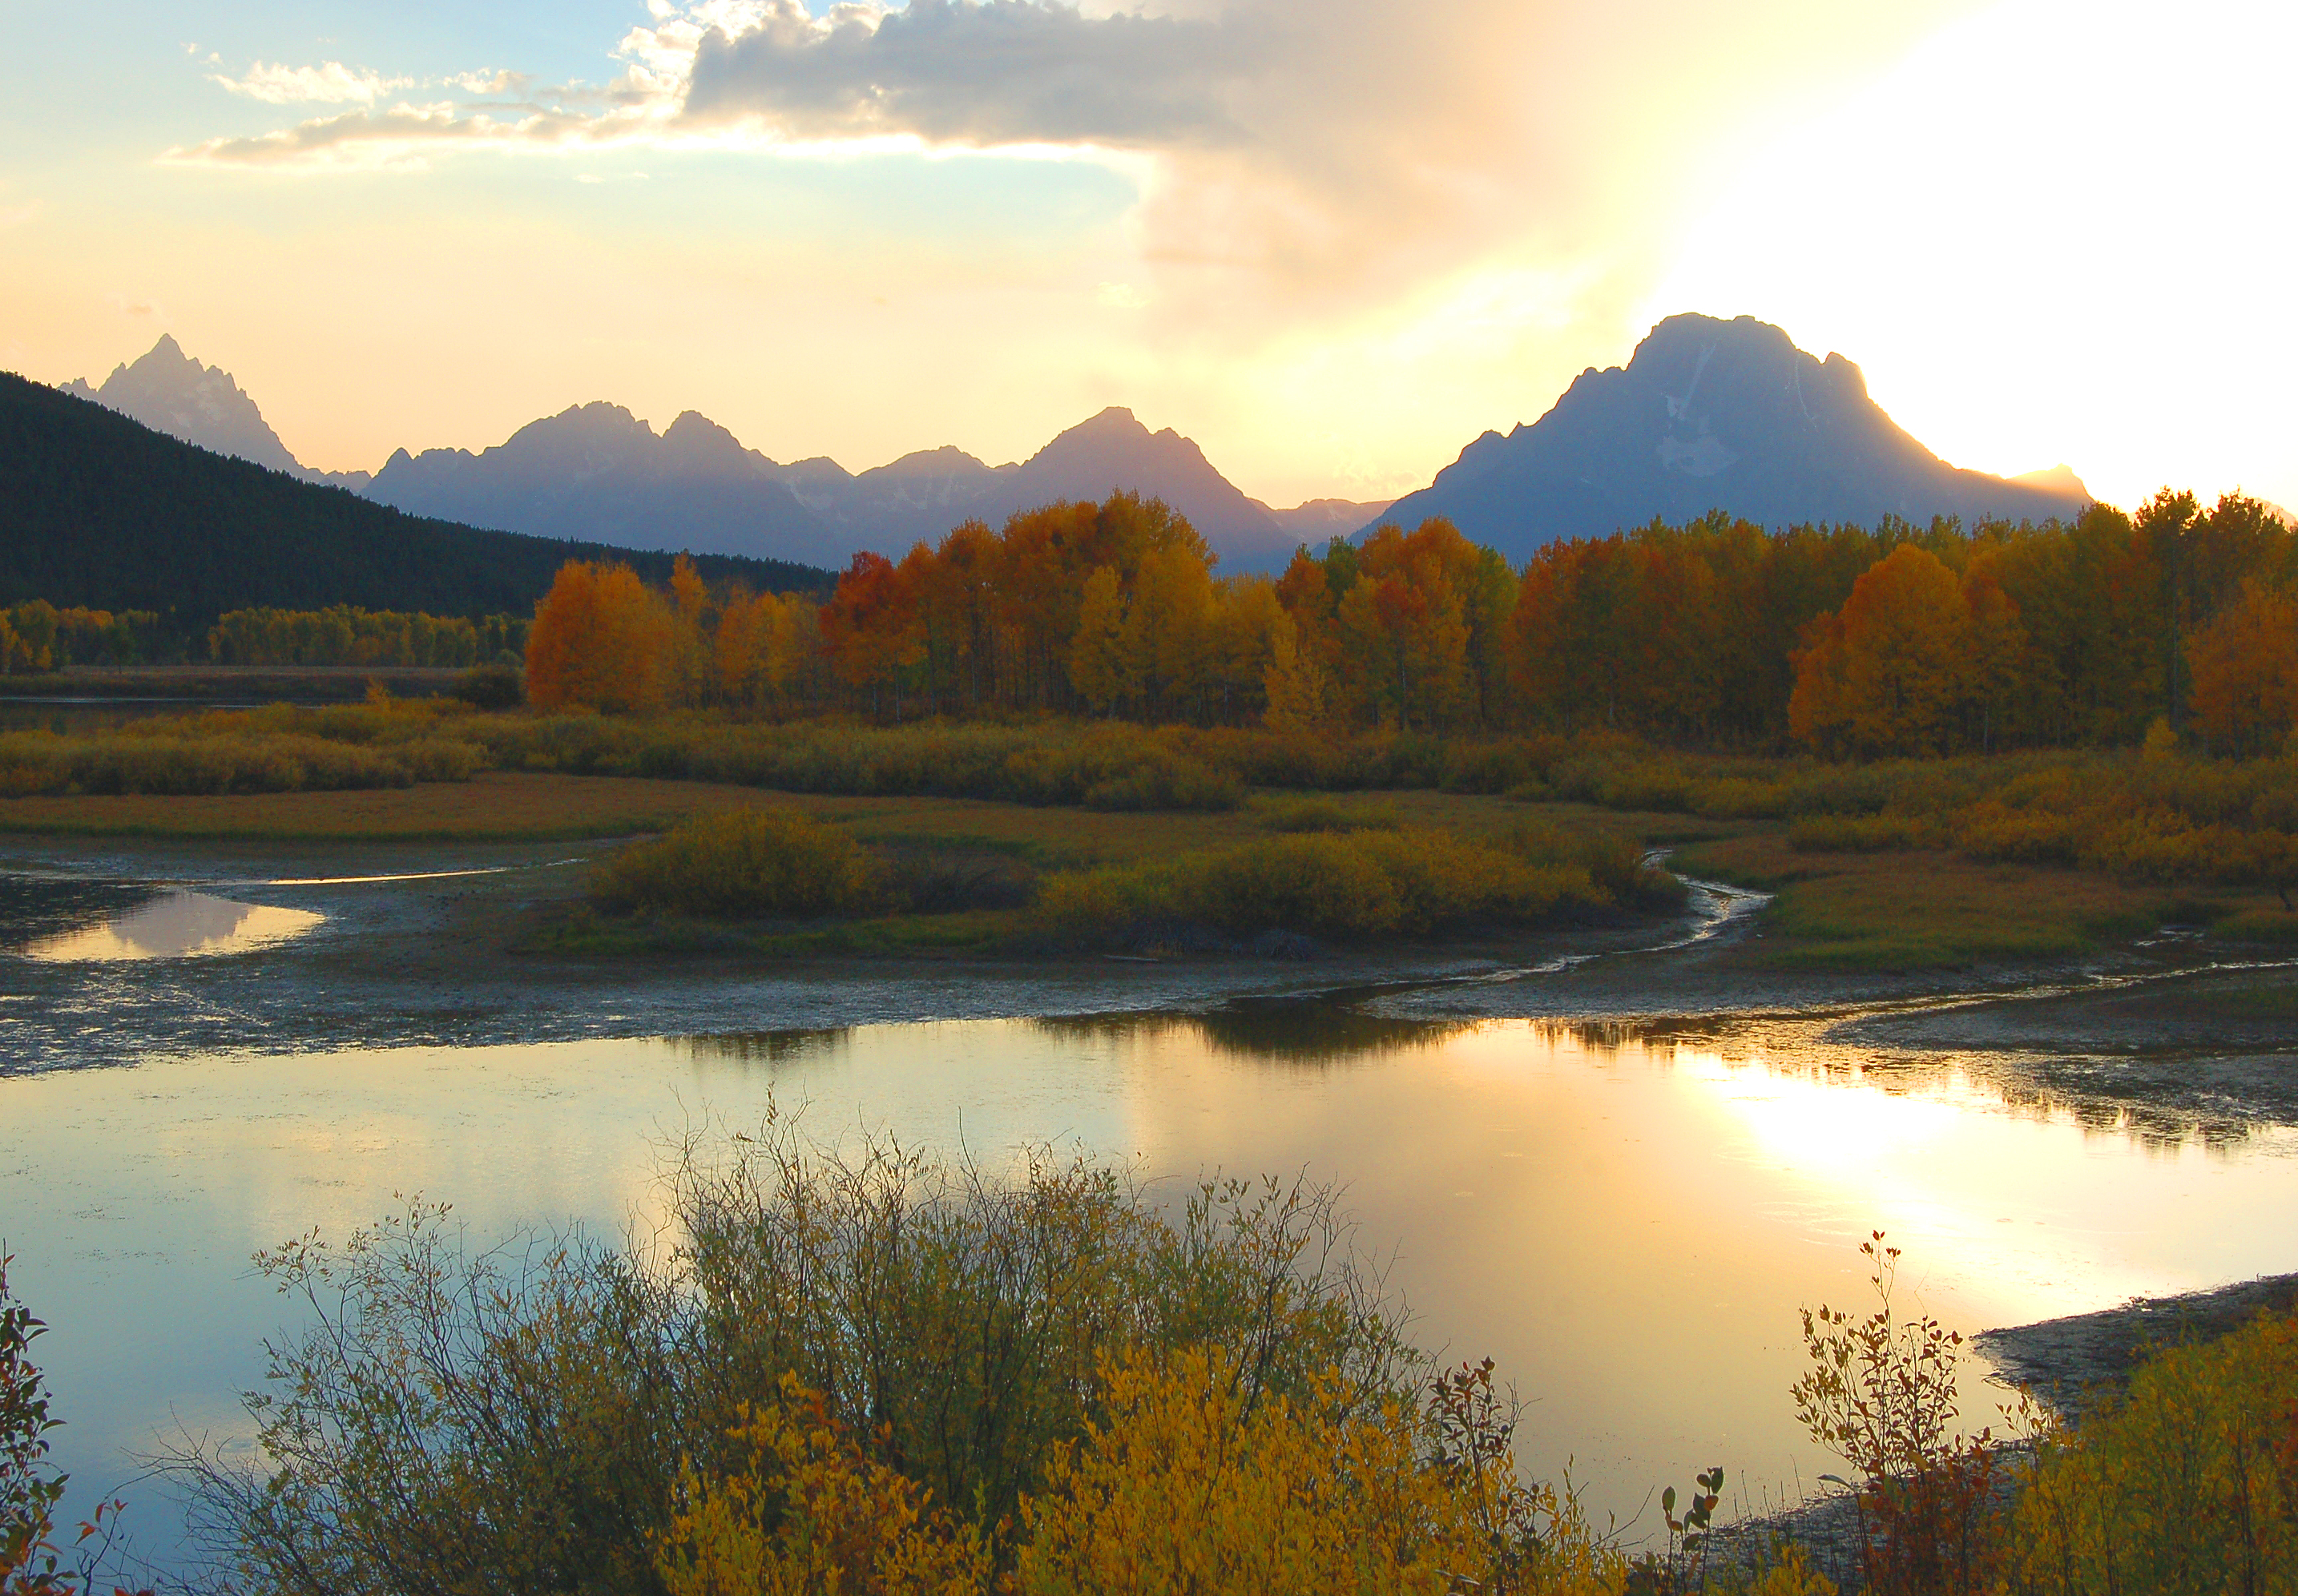 Another shot at sunset... in the Tetons.... in the fall..... There was a huge bull moose across the river, but all the photographers had their cameras pointing towards the sunset.